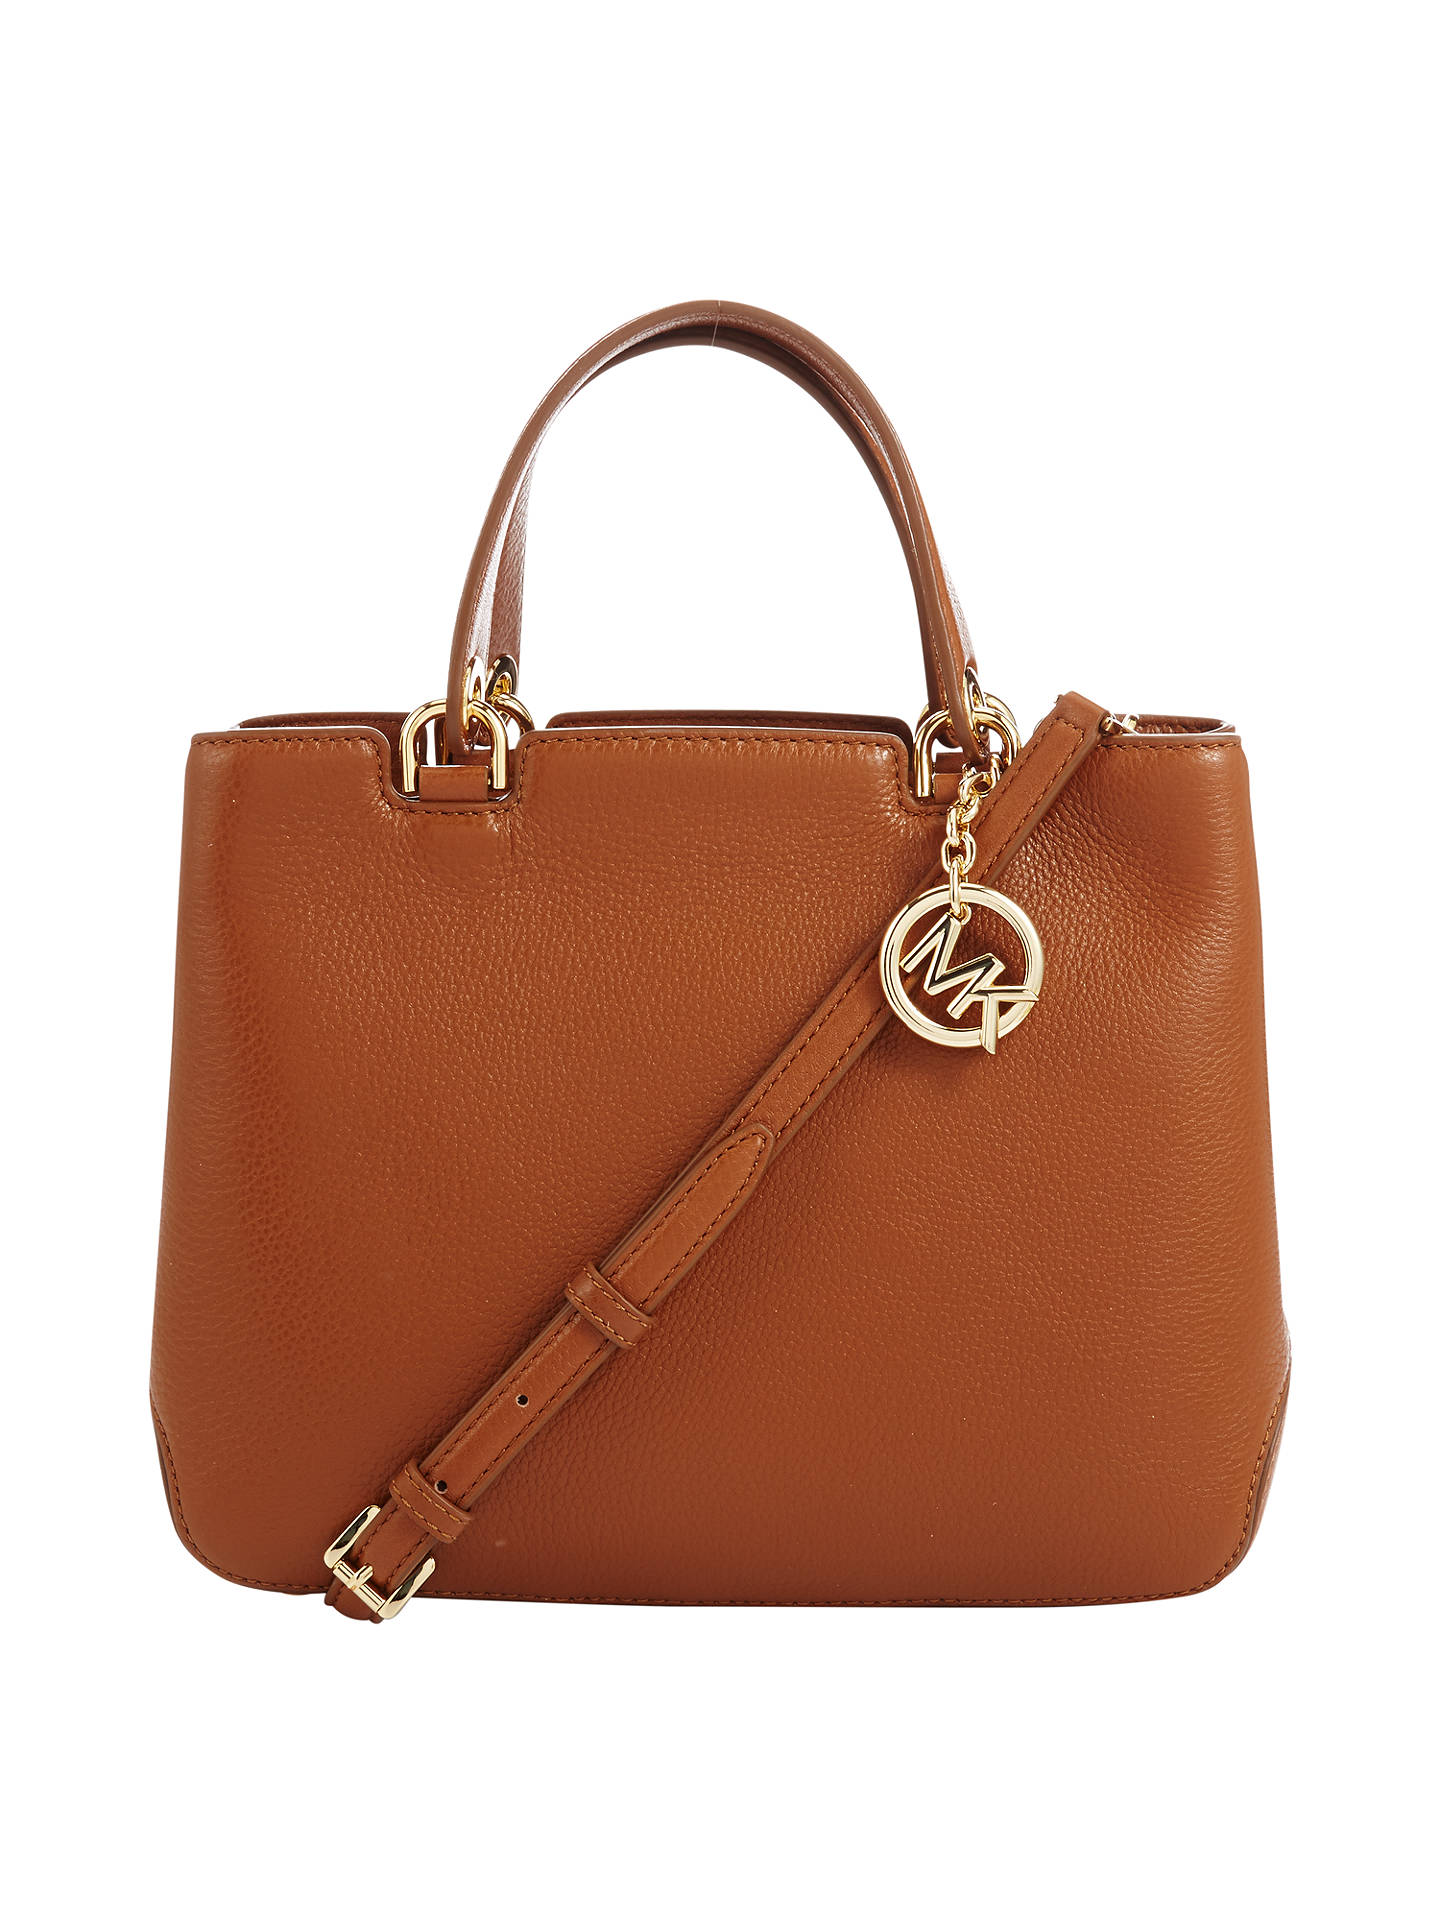 125f5be8518a Buy MICHAEL Michael Kors Anabelle Medium Top Zip Leather Tote Bag, Luggage  Online at johnlewis ...